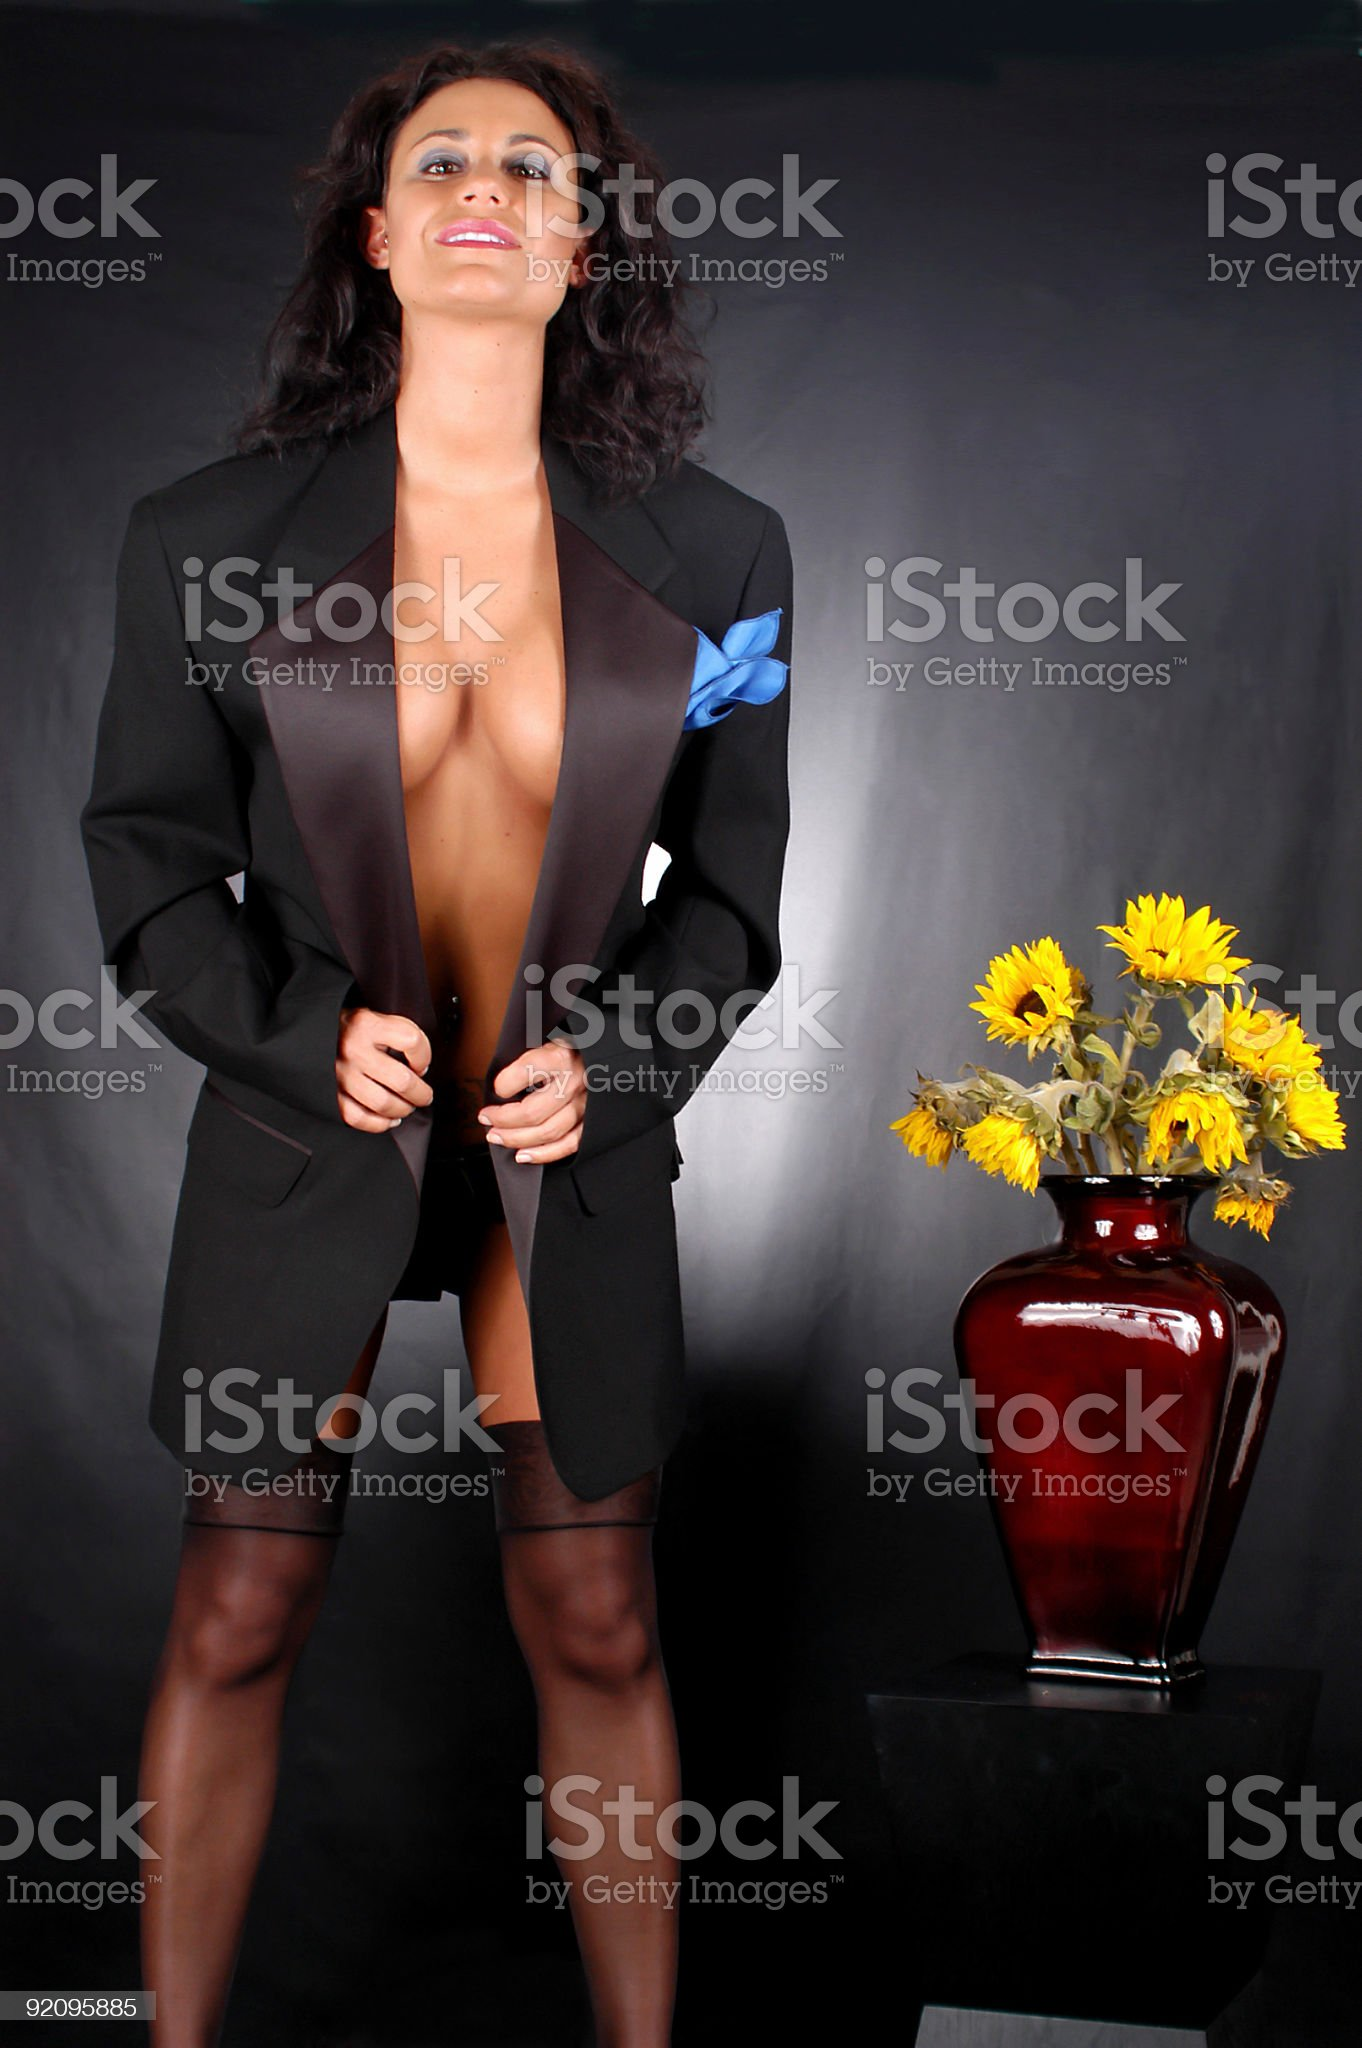 Party Girl! royalty-free stock photo